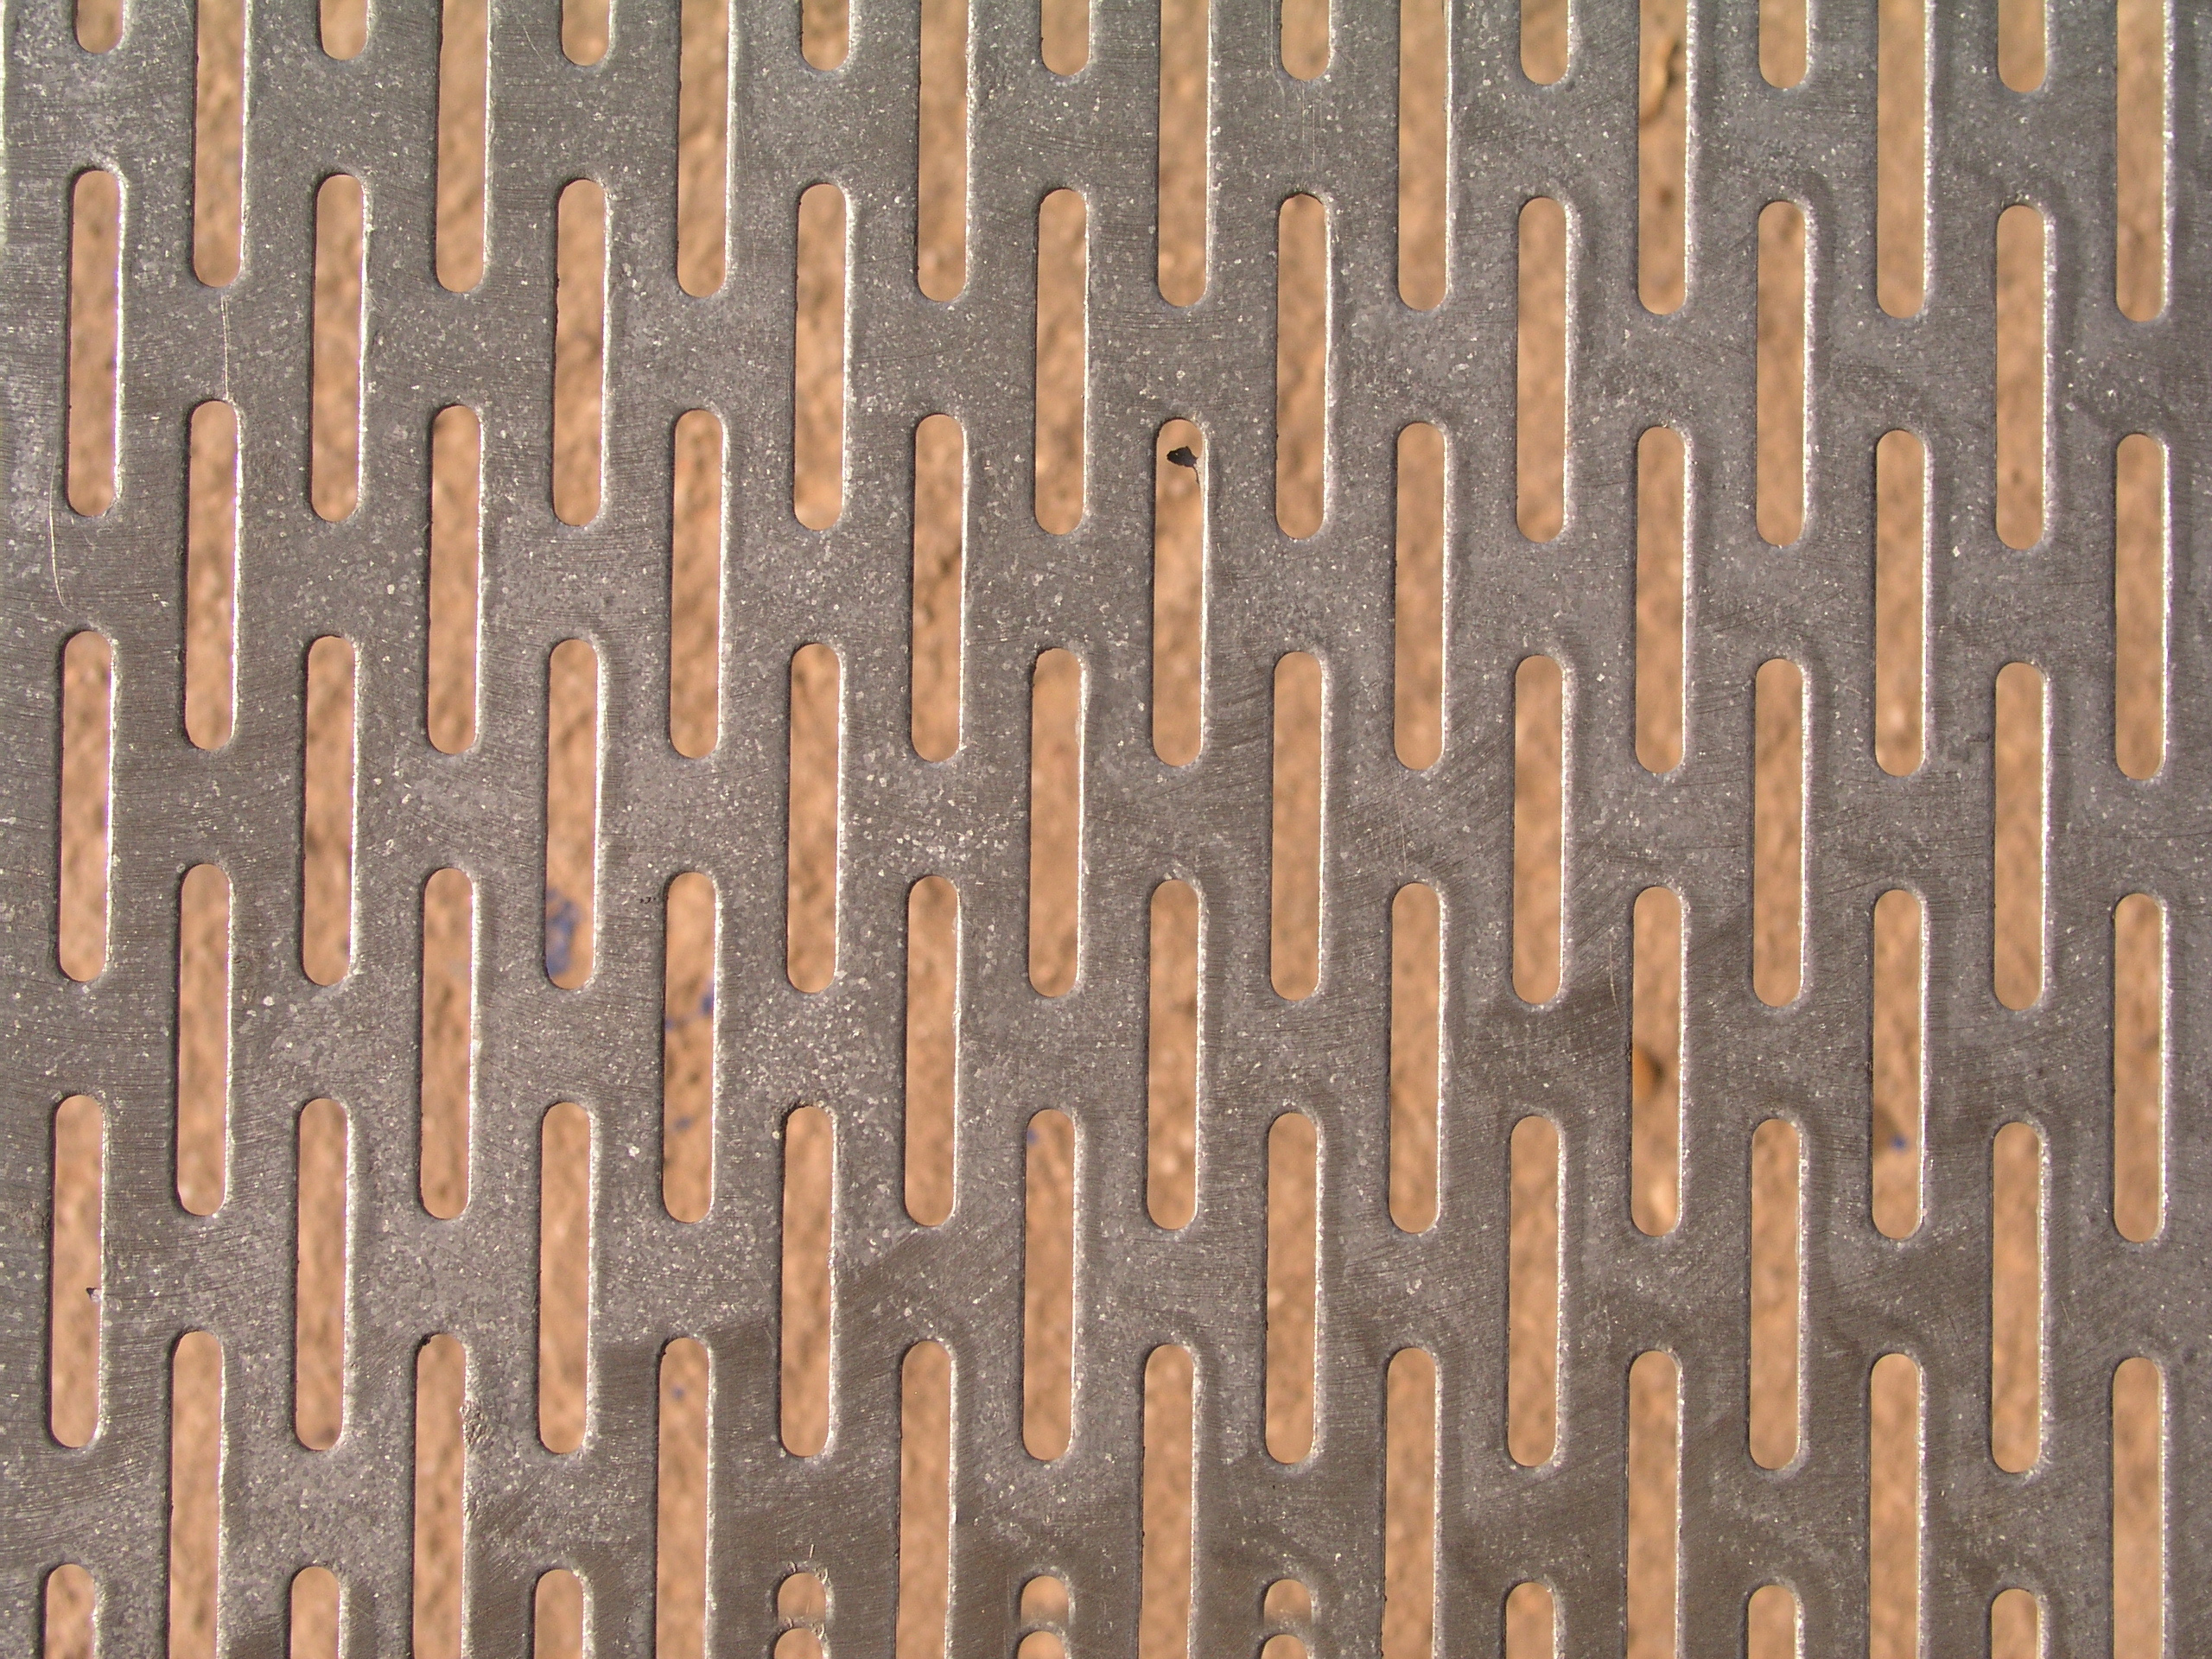 leaf iron with holes, download photo, background, texture, metal